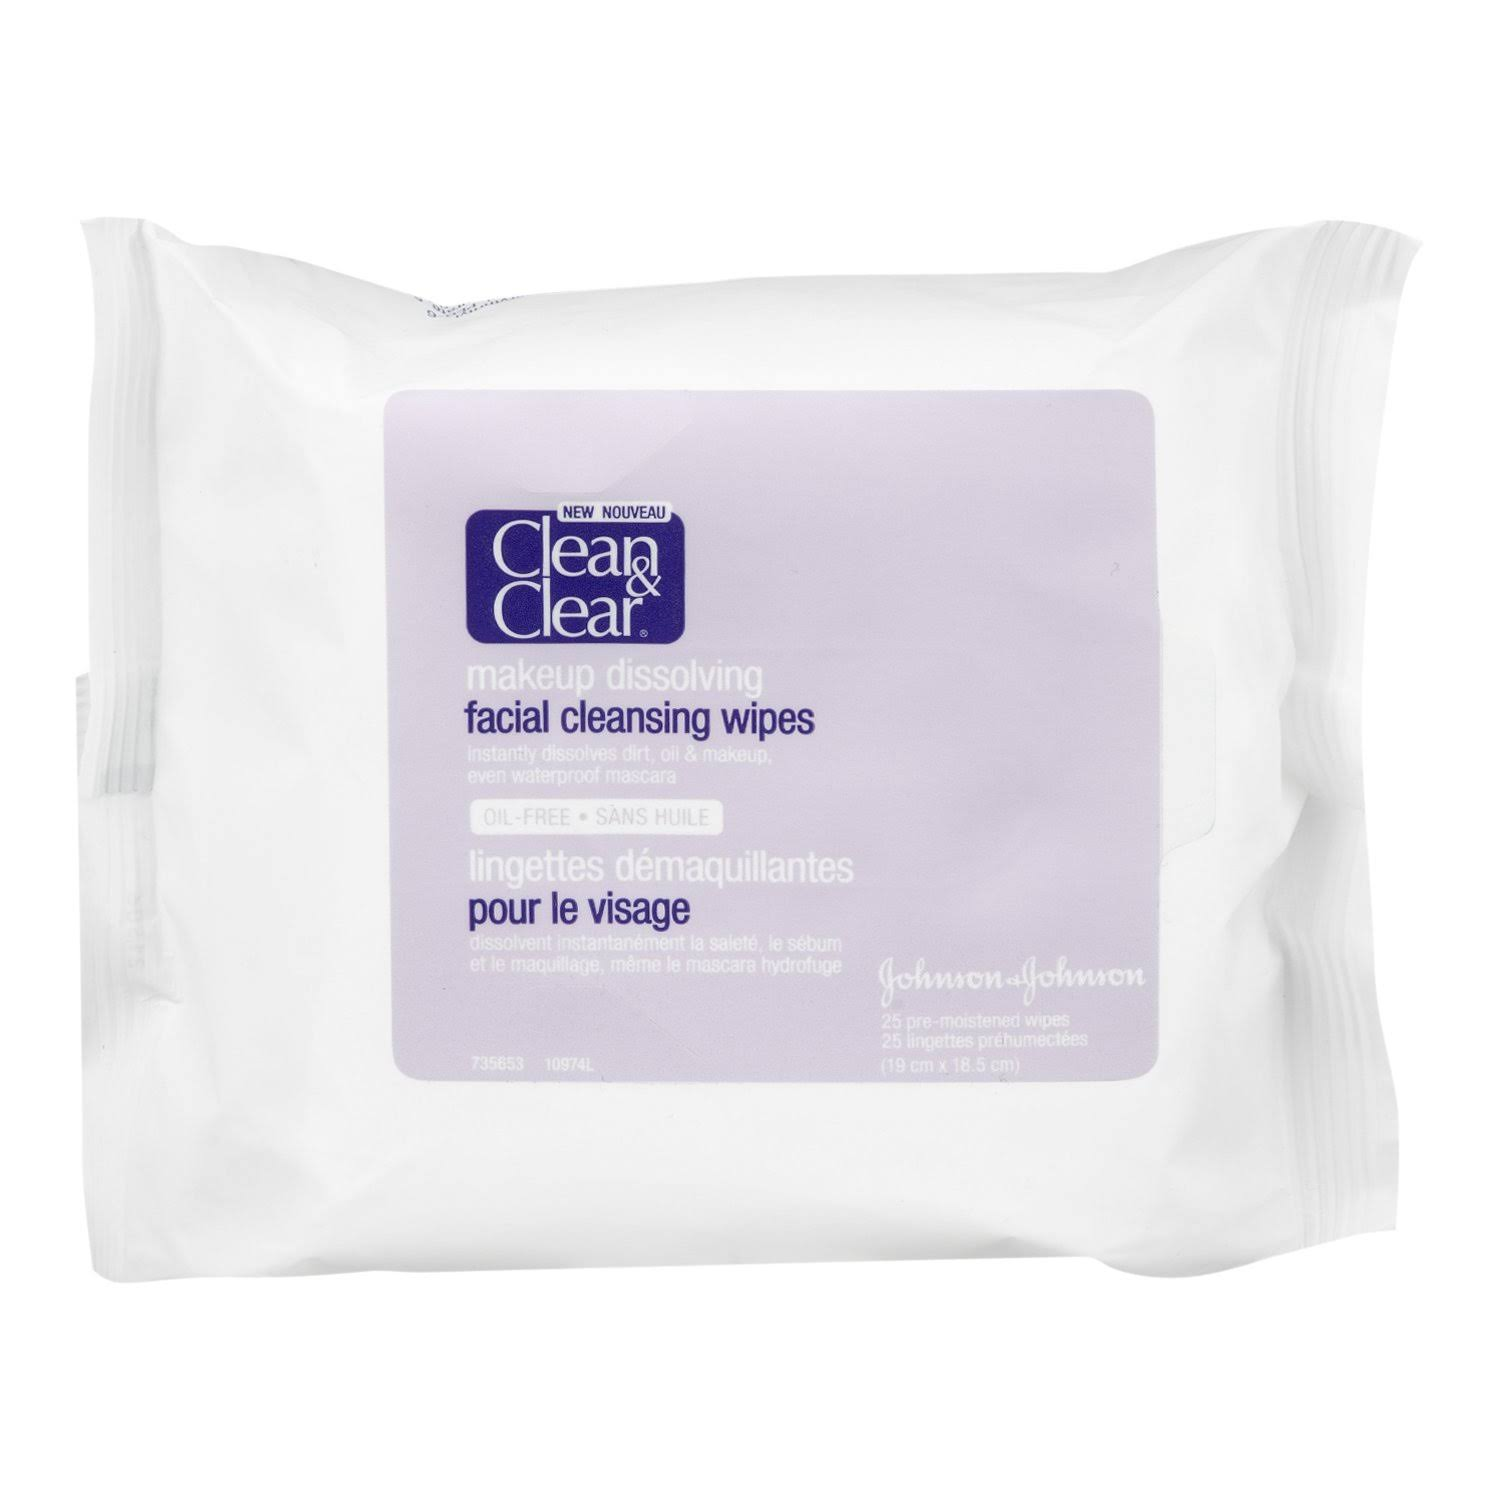 Clean and Clear Makeup Dissolving Facial Cleansing Wipes - 25ct